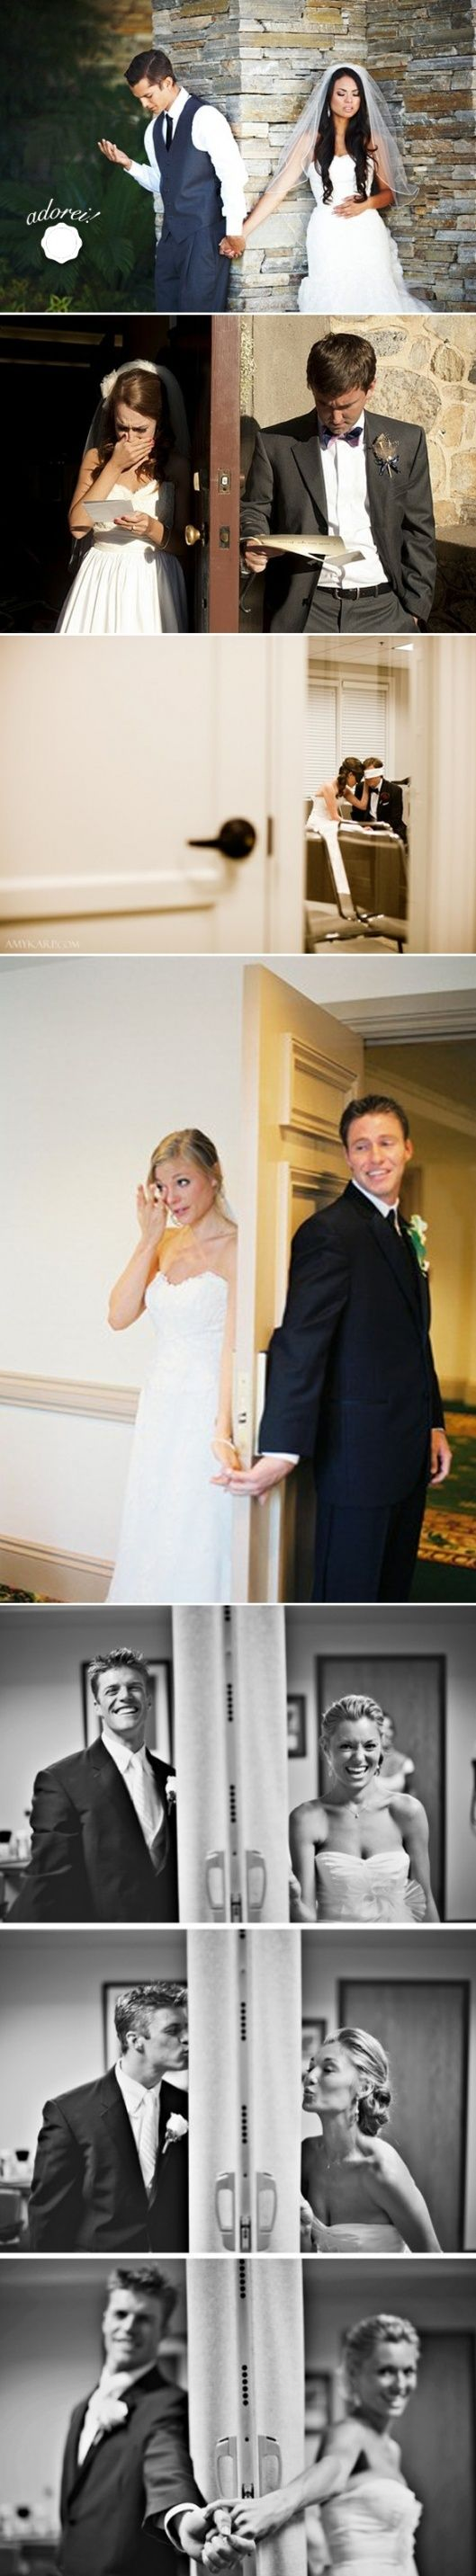 pre-wedding pictures without breaking tradition. : - pre-wedding pictures without breaking tradition. :)  Repinly Weddings Popular Pins